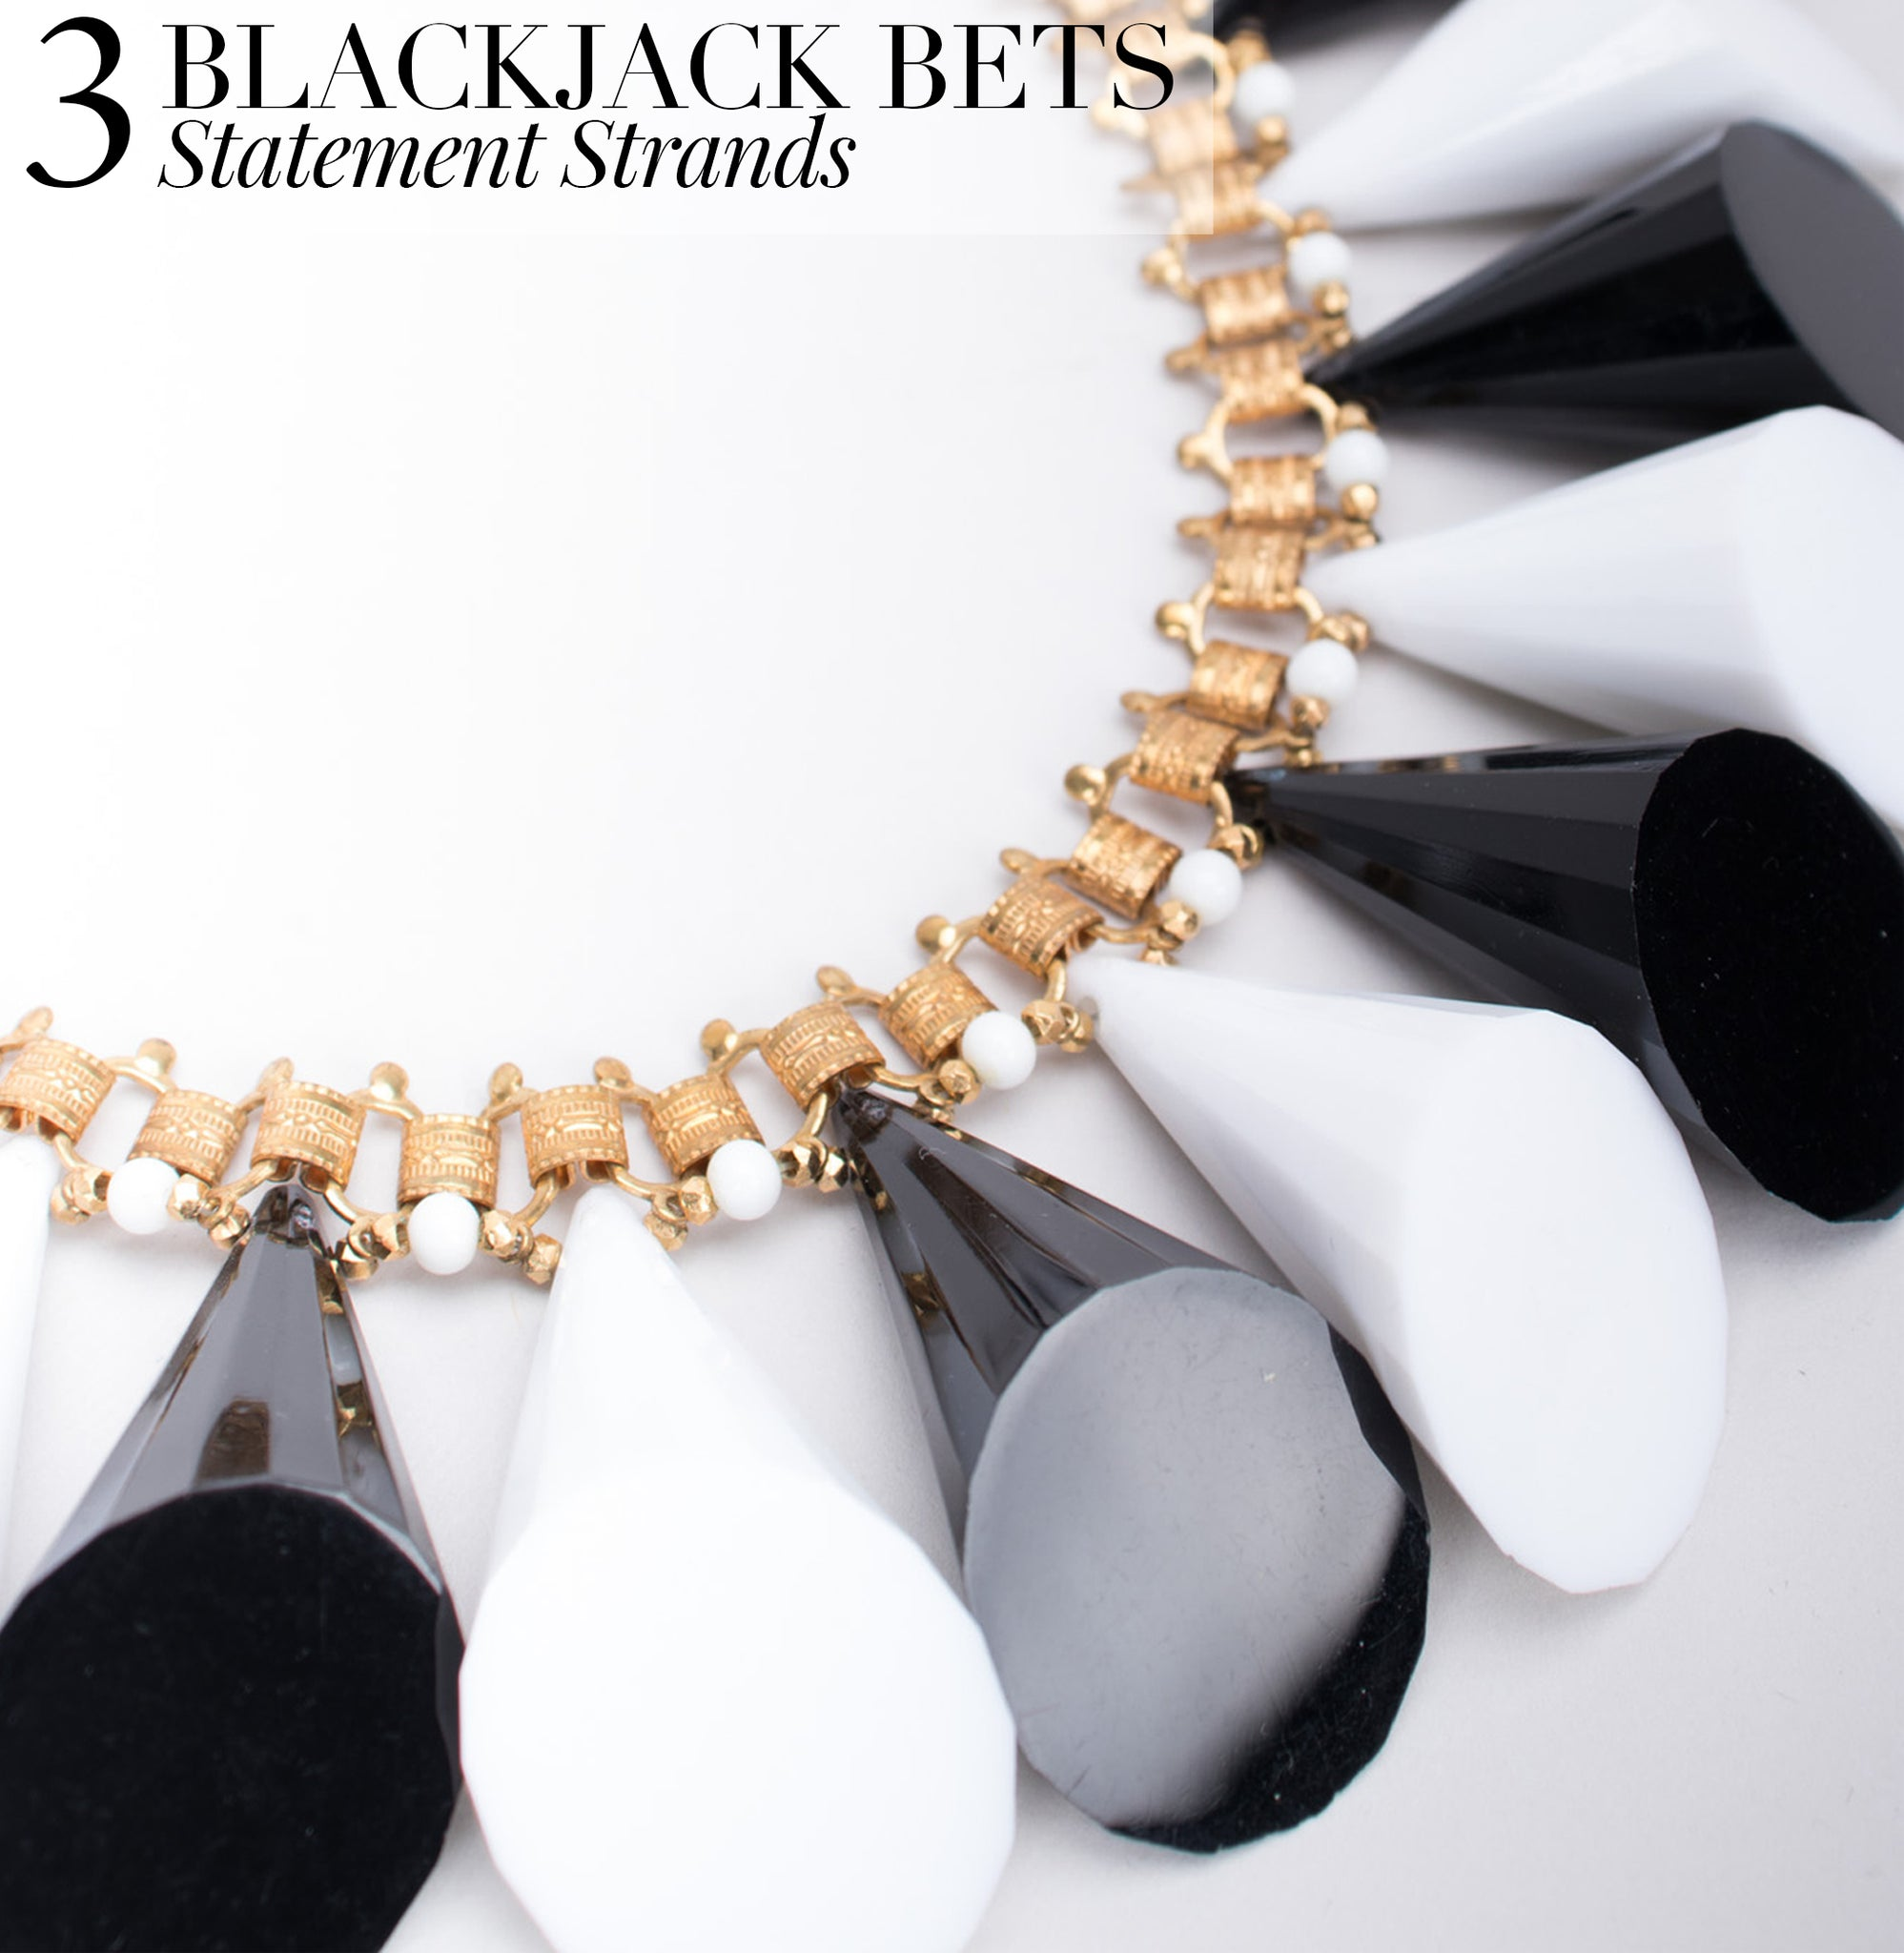 RECESS Dress Code Glamorous Las Vegas William De Lillo Cone Collar Necklace Blackjack